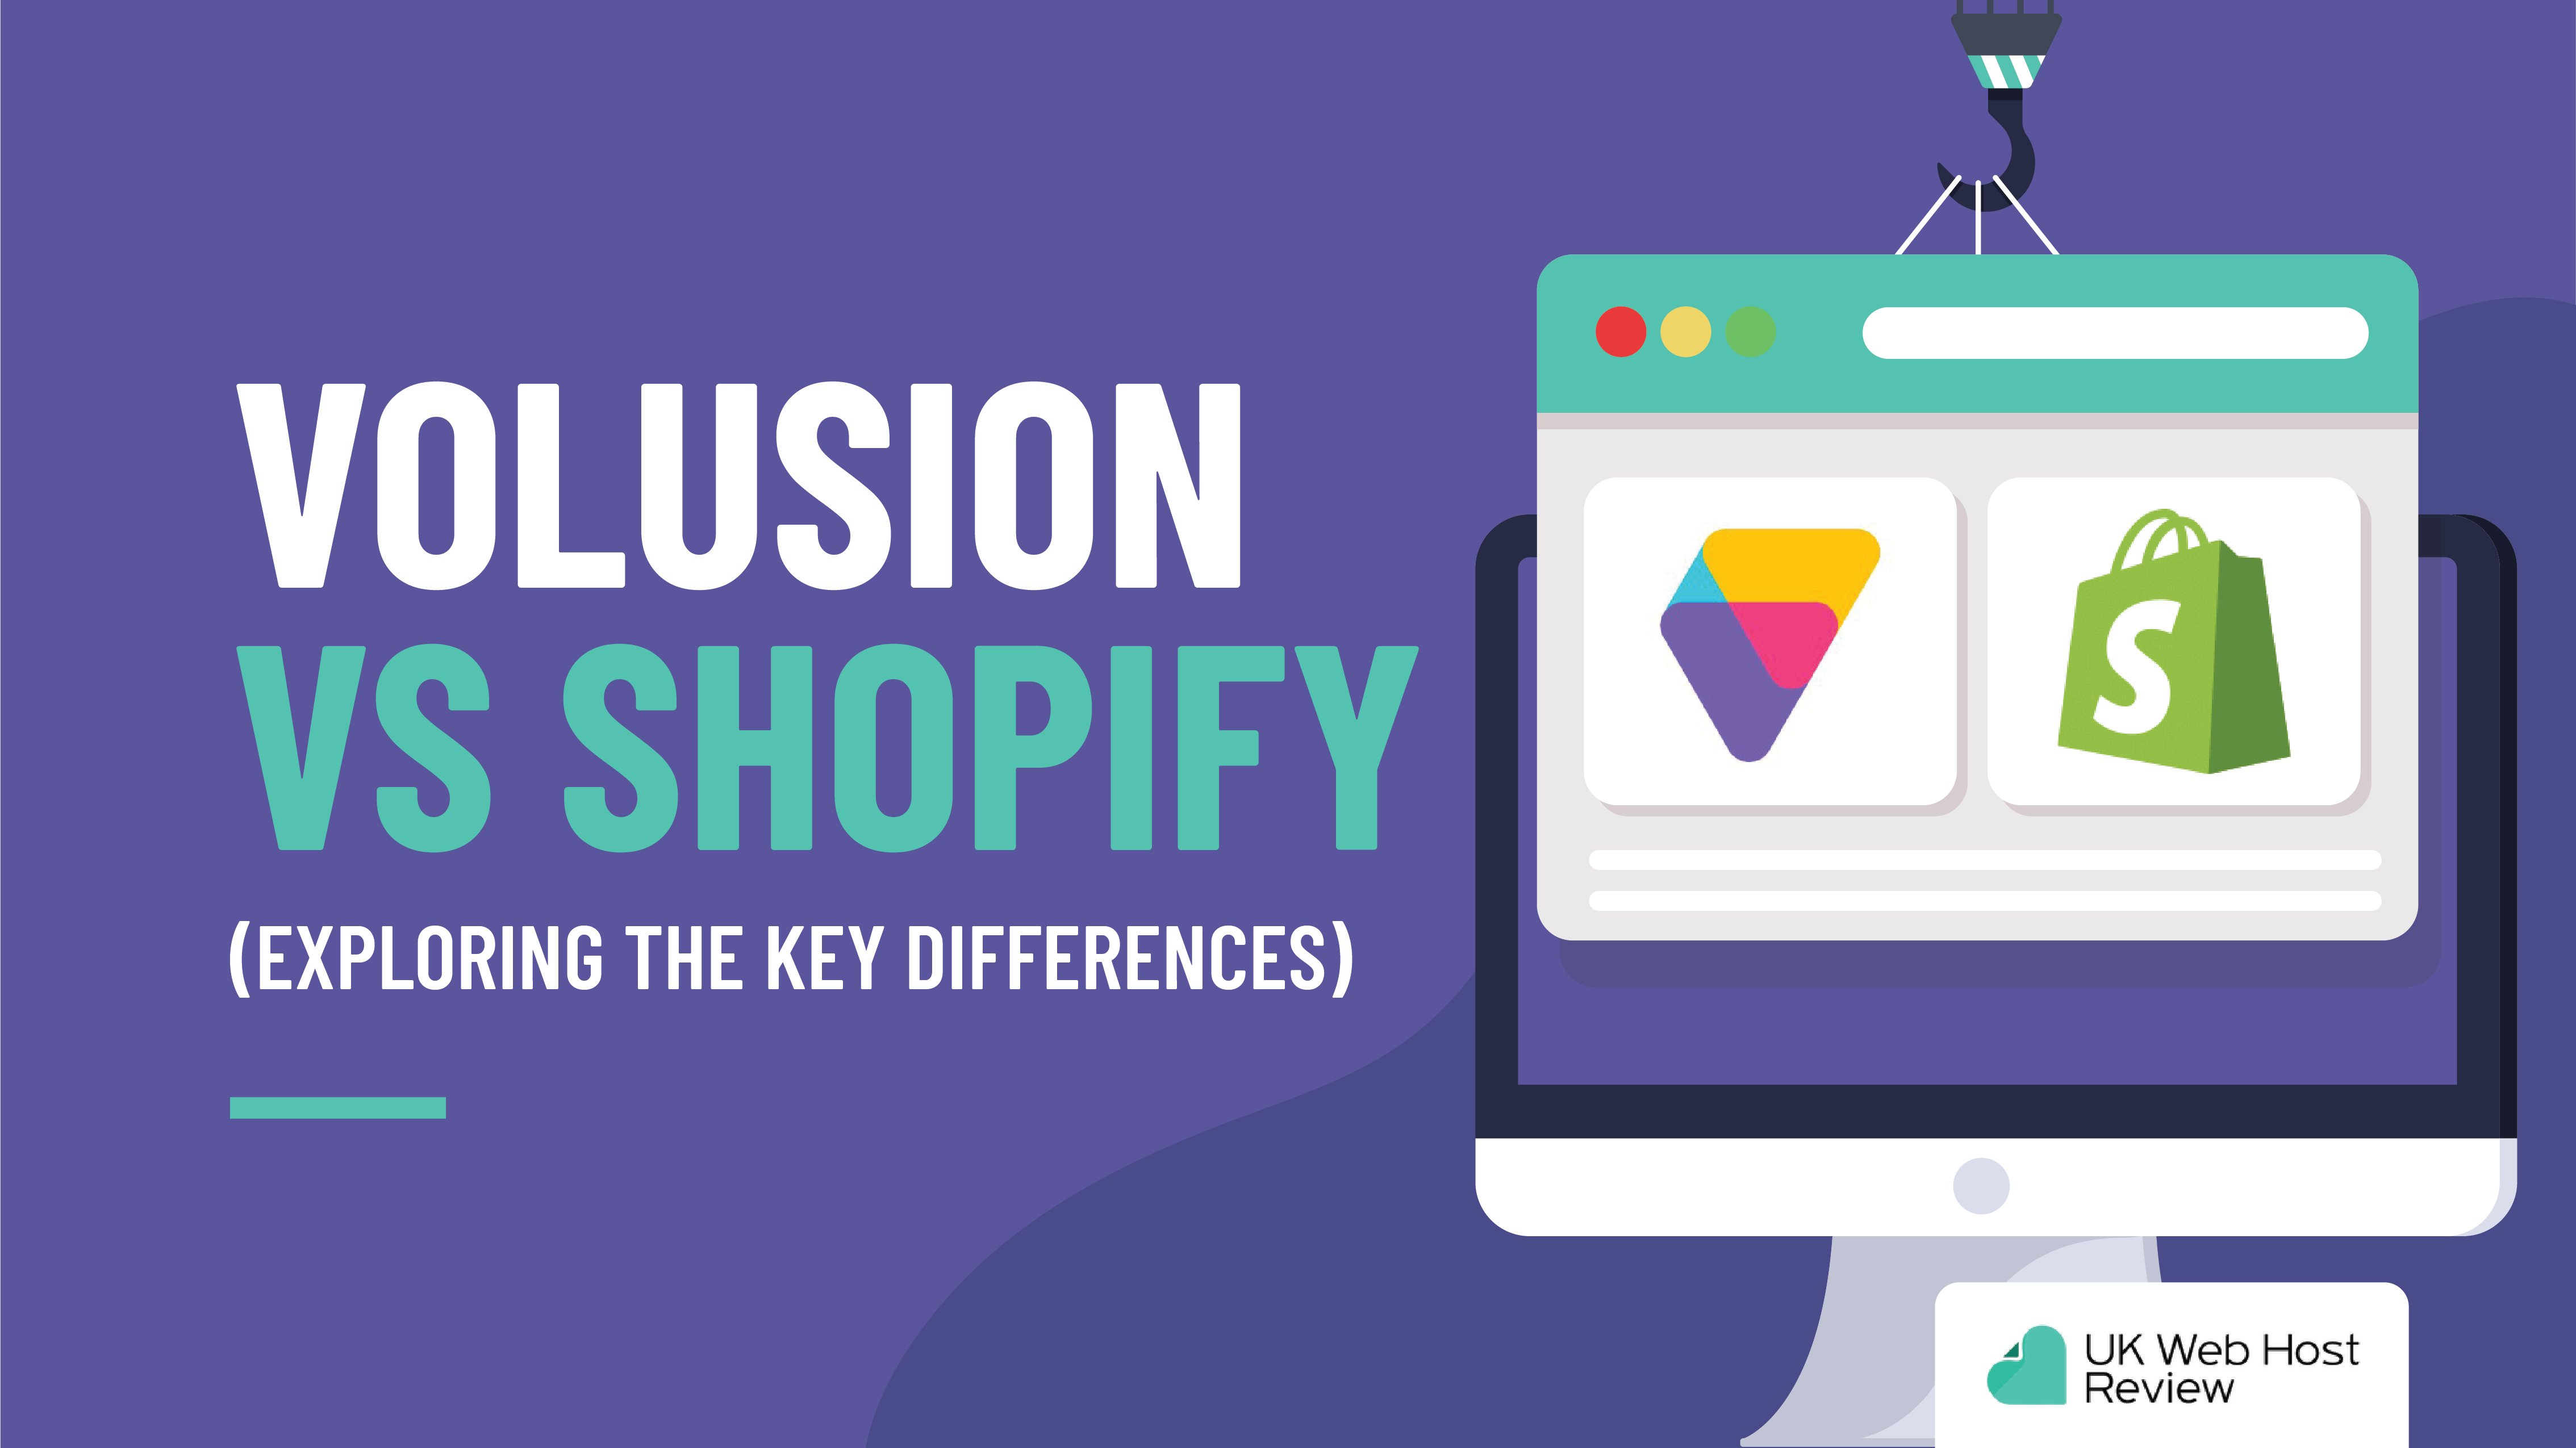 Volusion Vs Shopify (Exploring the Key Differences)